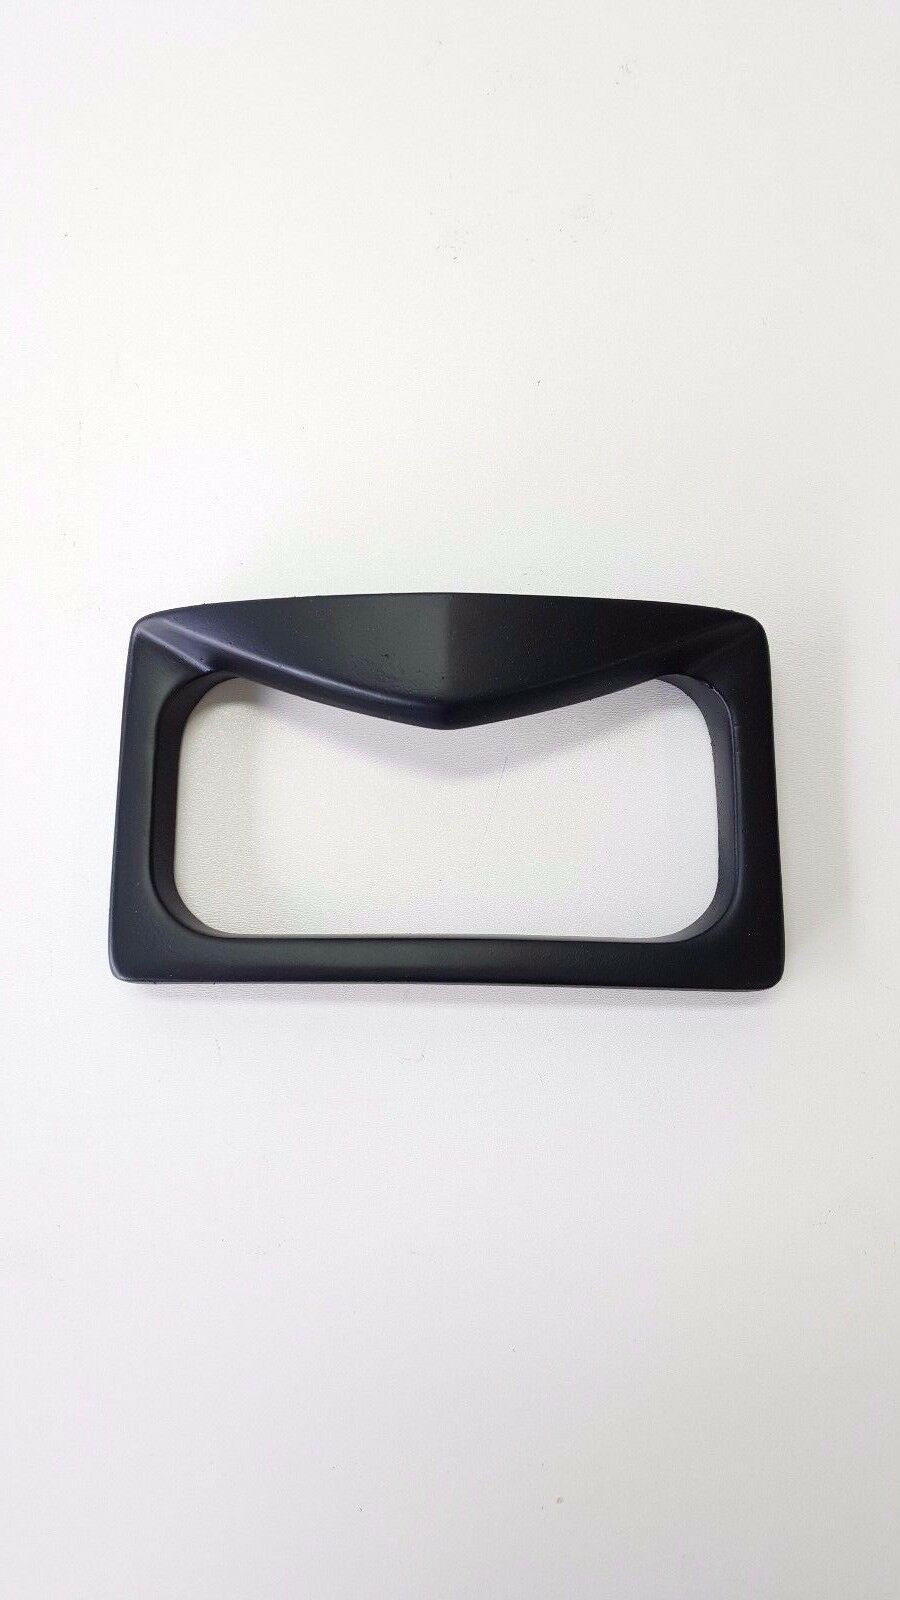 Harley Davidson custom license plate frame for bagger motorcycle